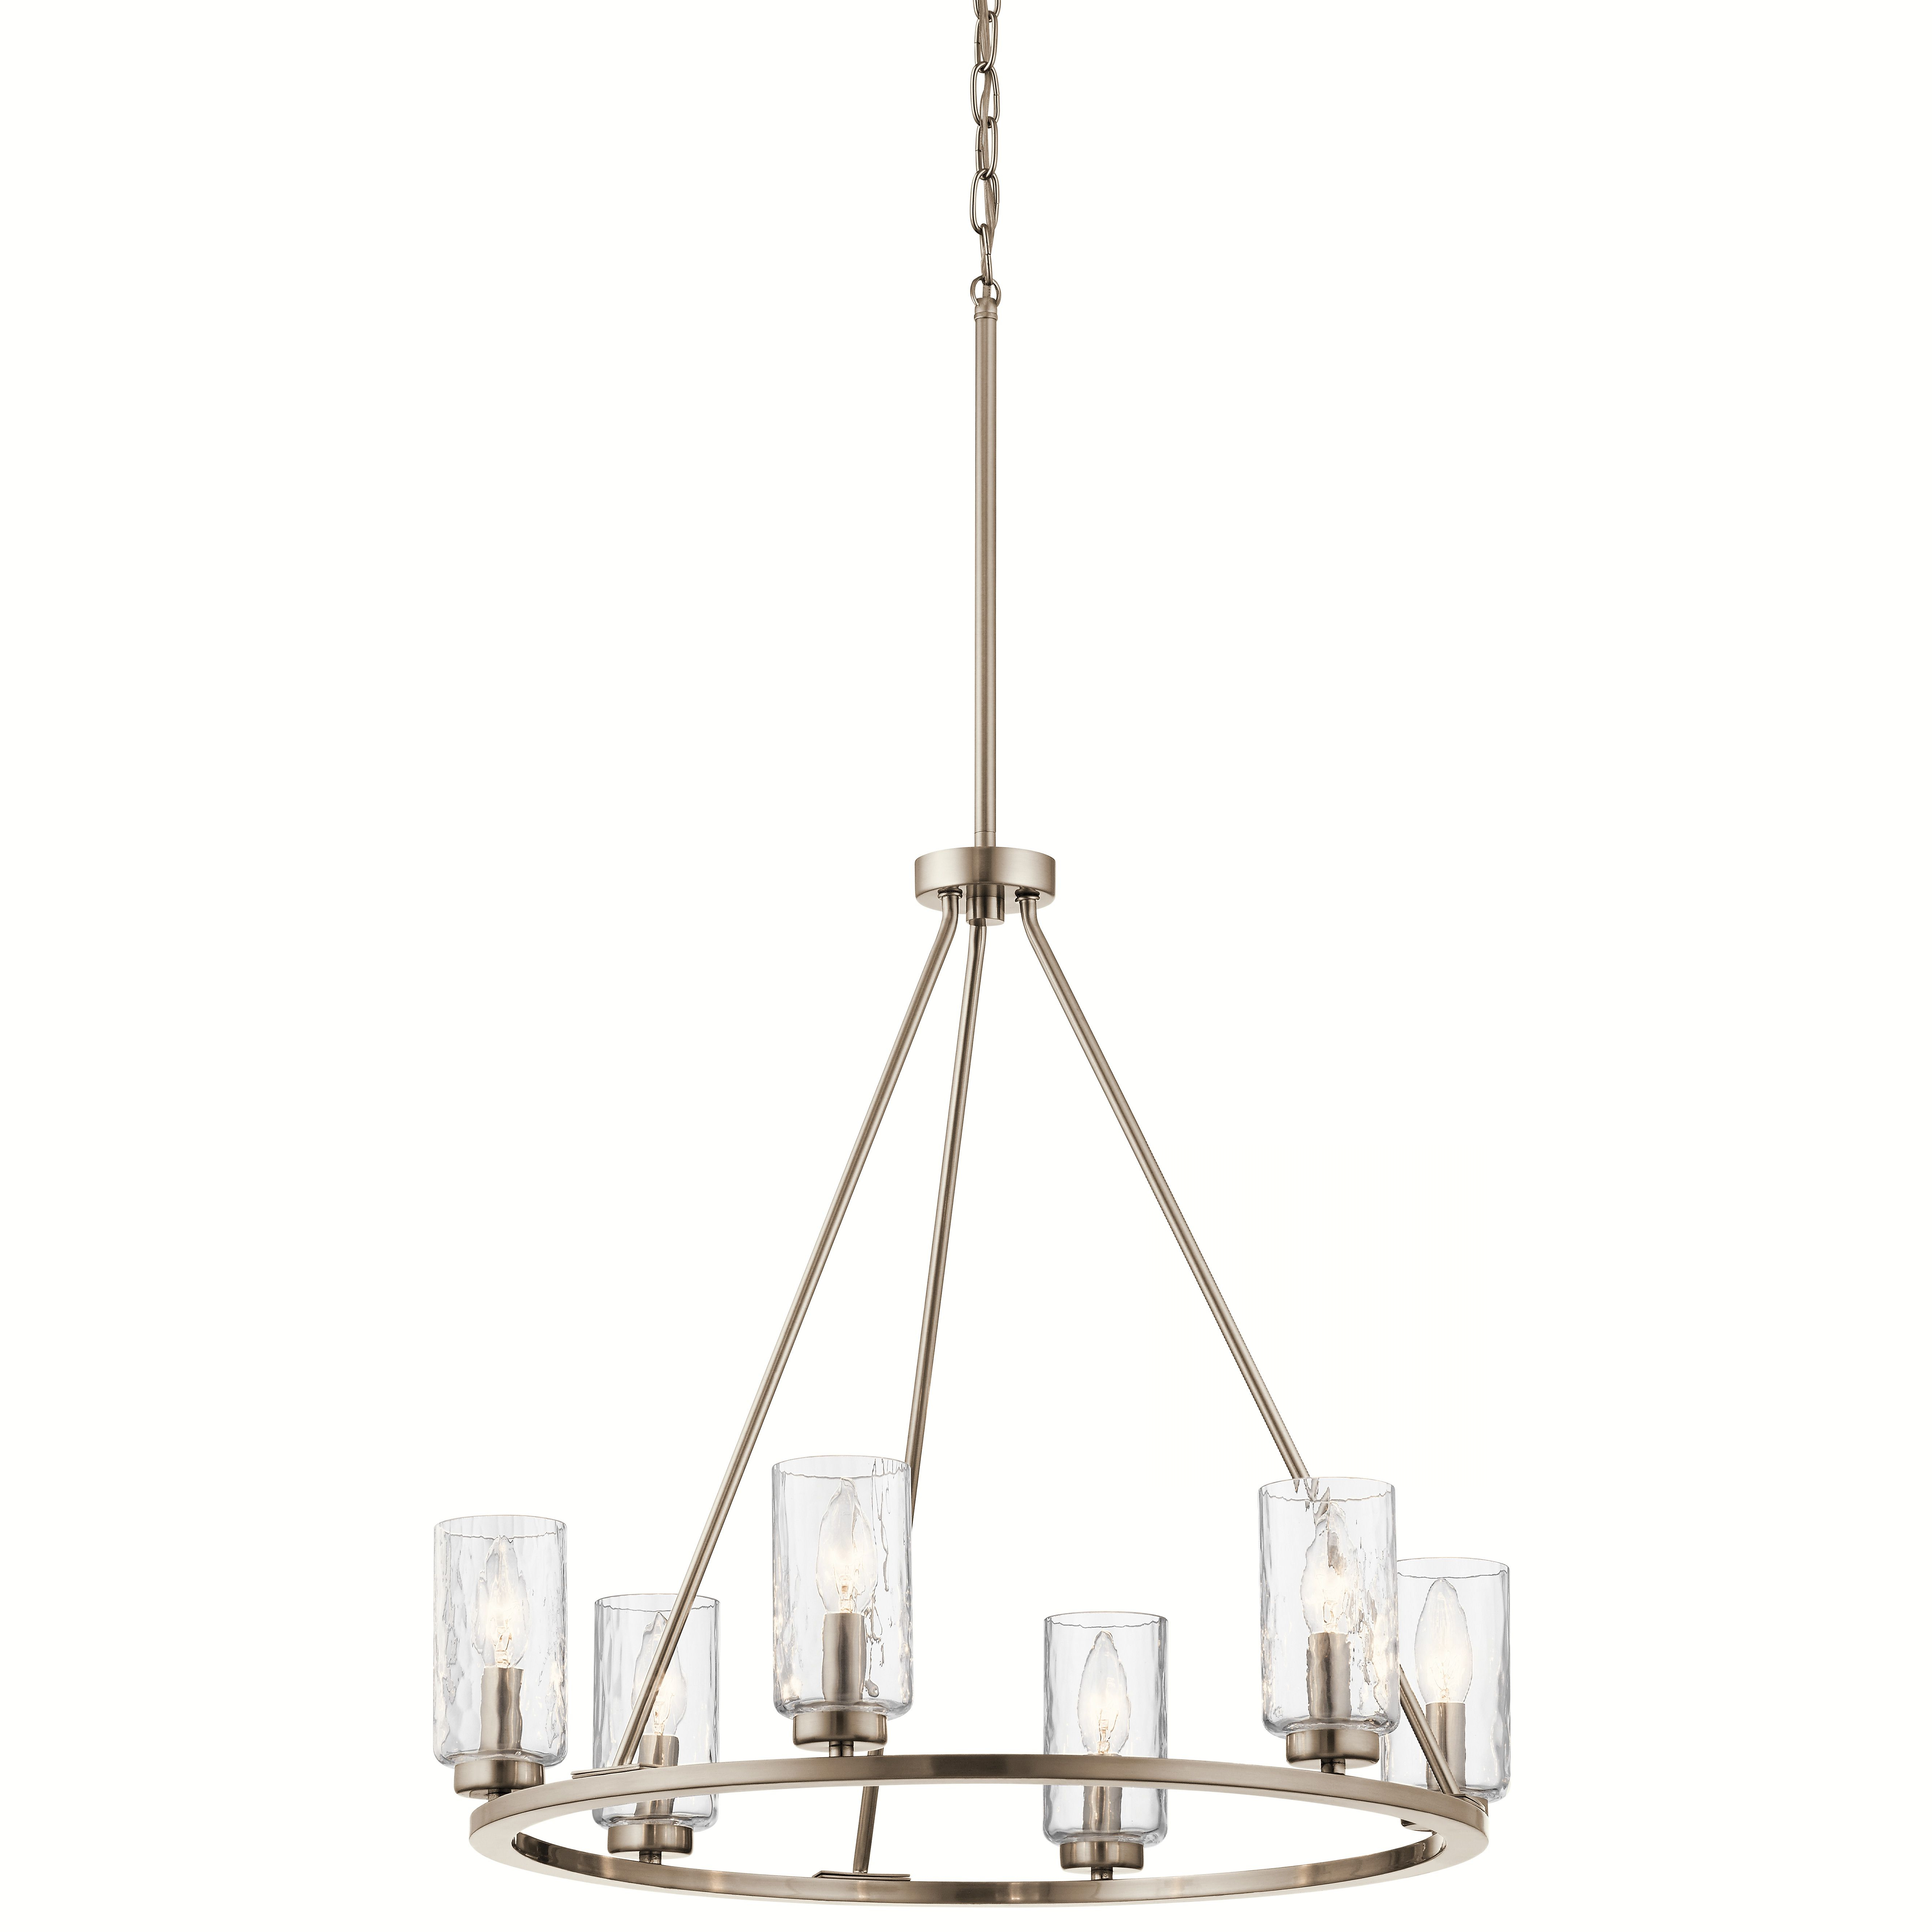 Kichler Marita 6-Light Brushed Nickel Transitional Textured within Current Suki 5-Light Shaded Chandeliers